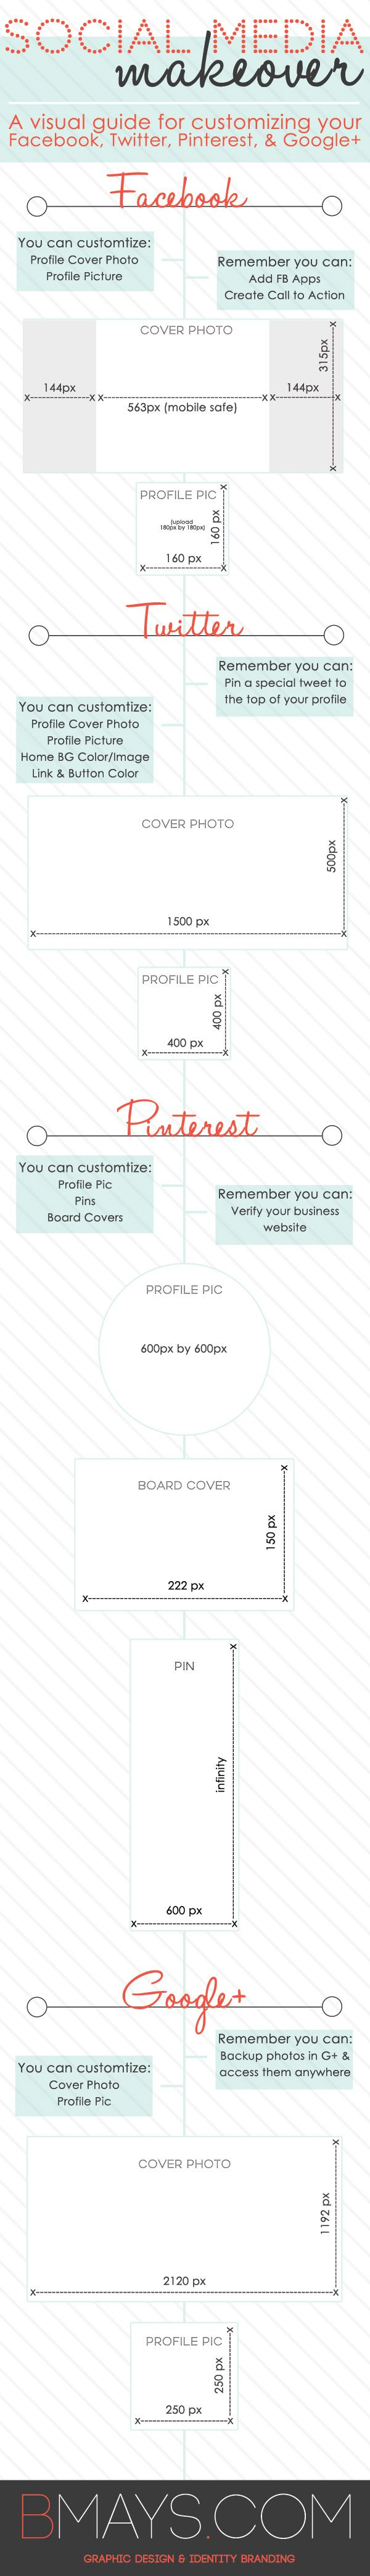 best business social media images on pinterest social media